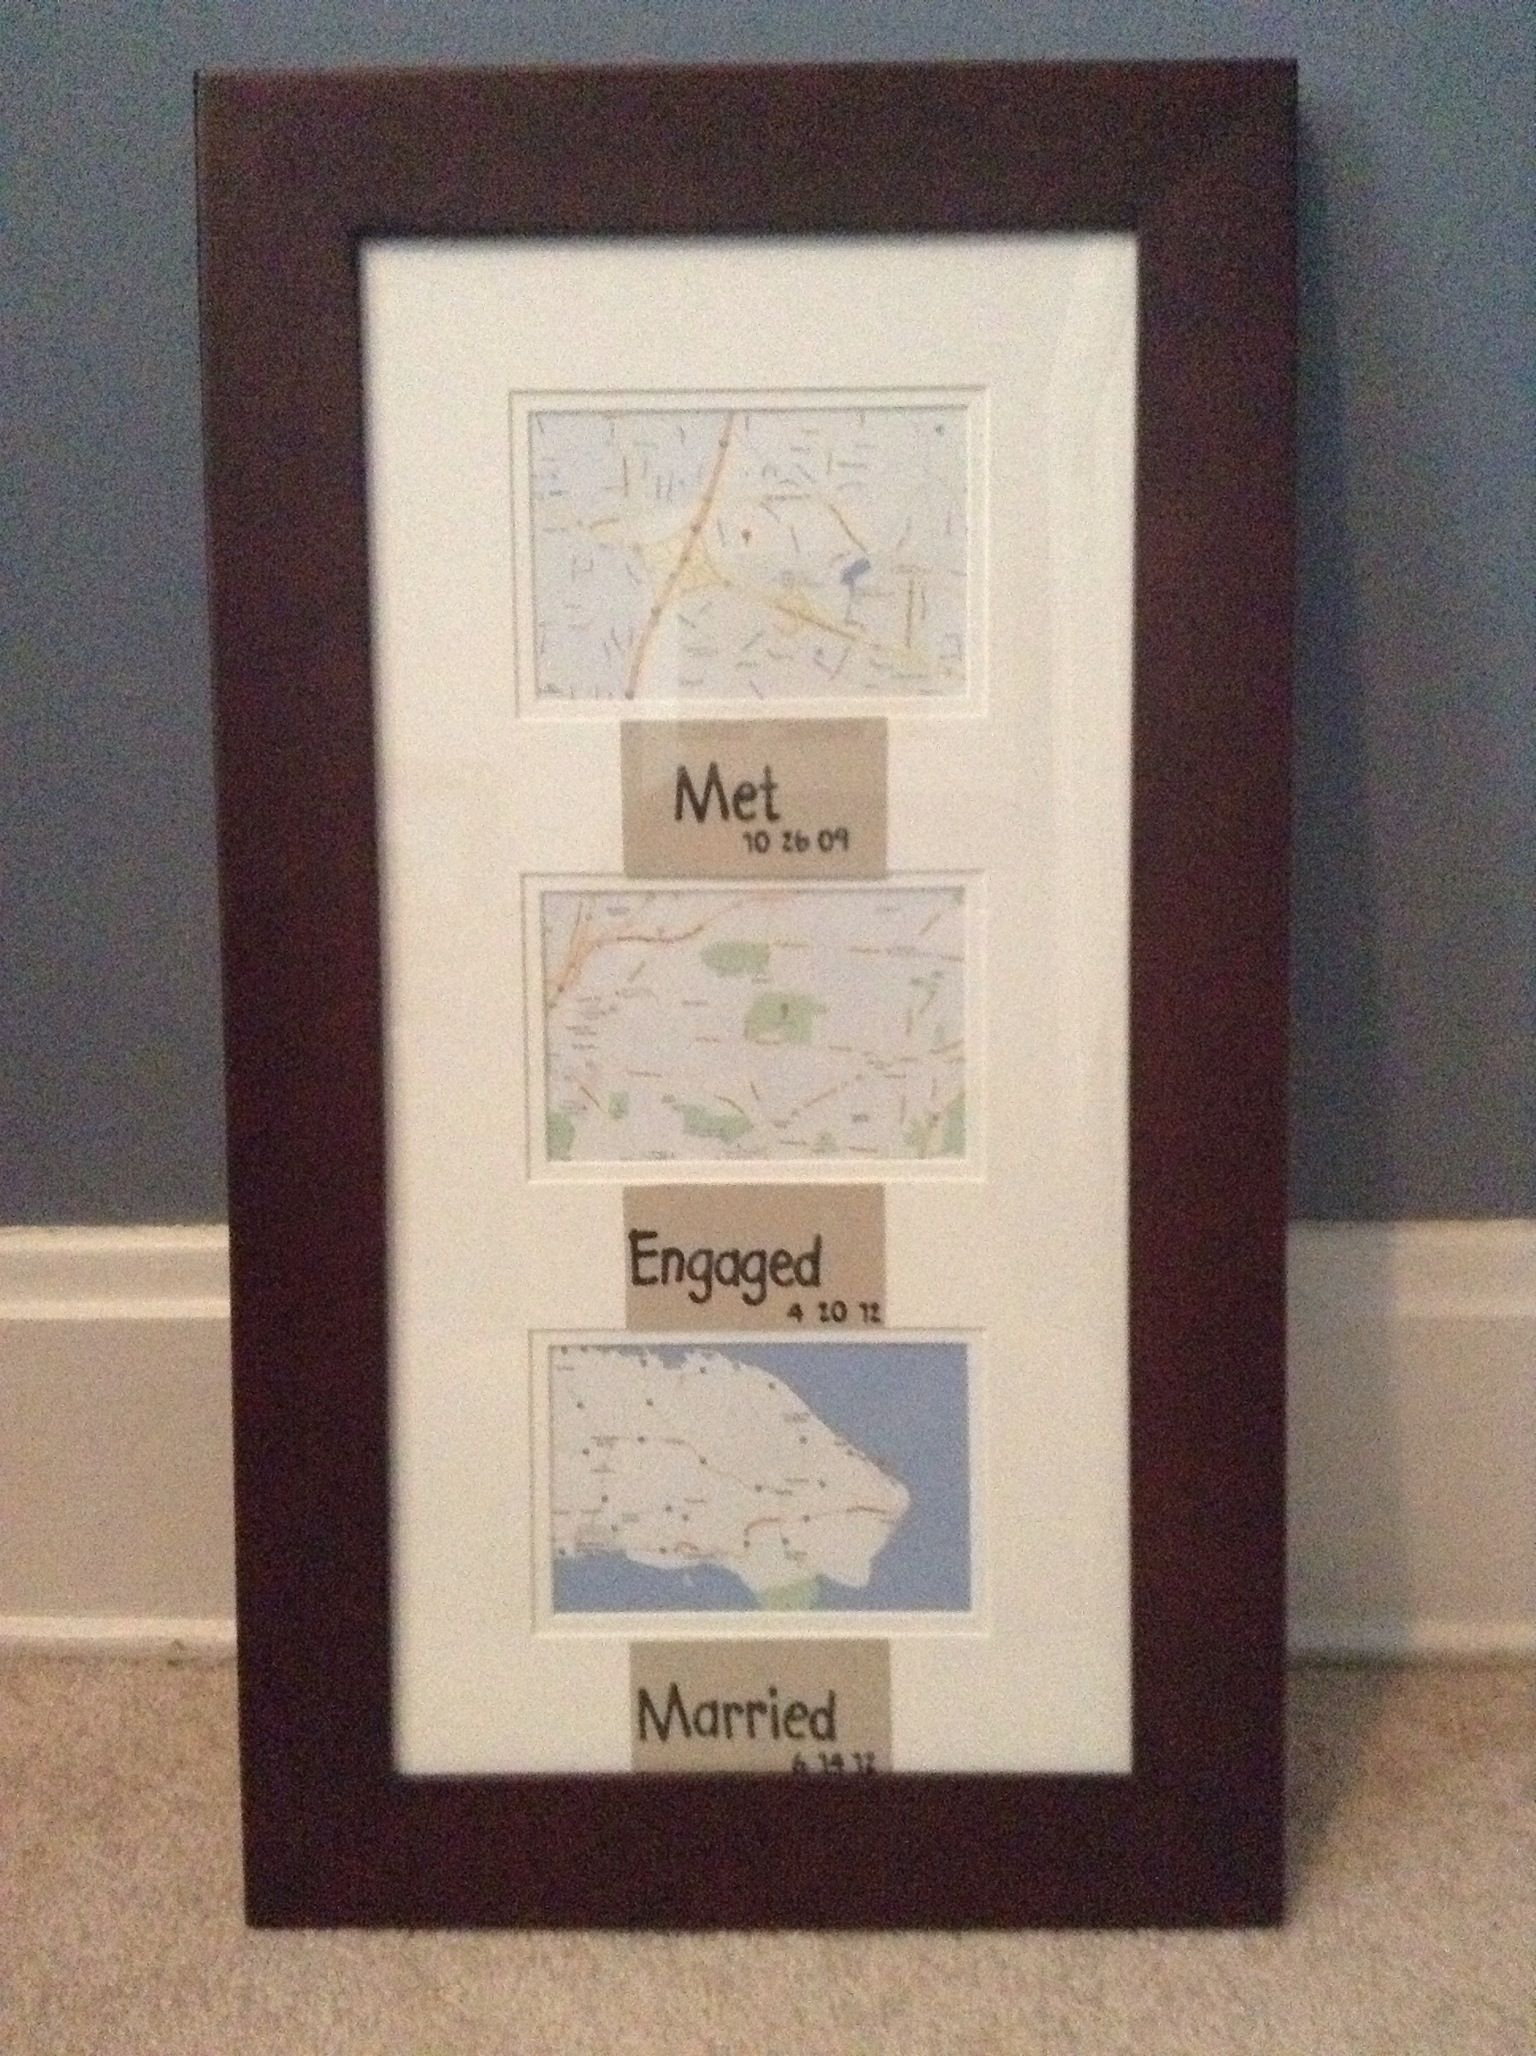 met engaged married map frame. met engaged married map frame  my things  pinterest  map